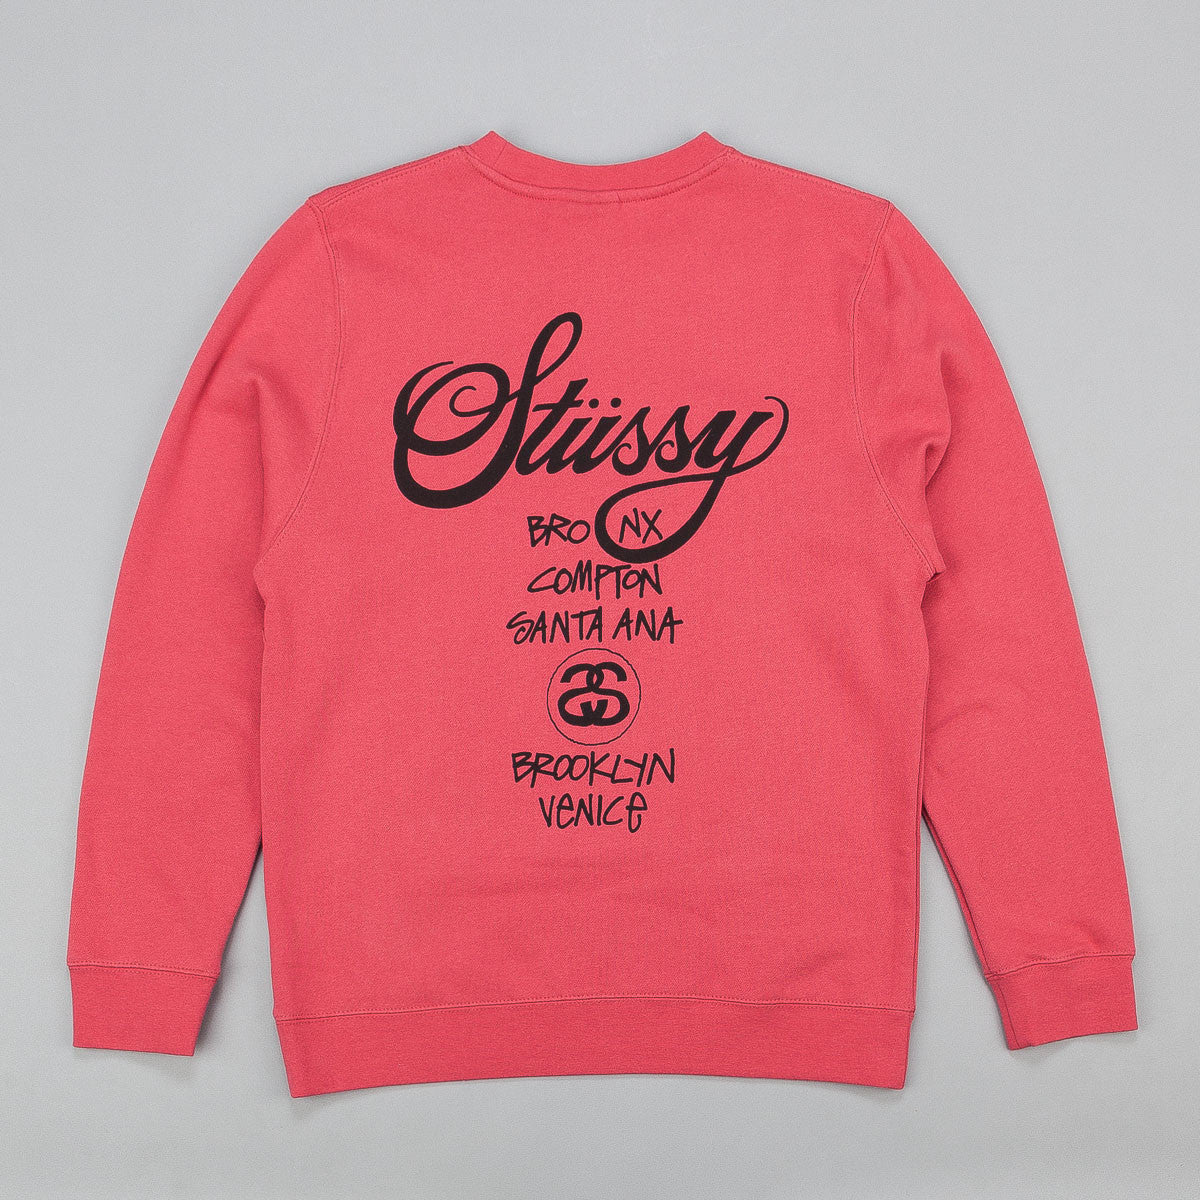 Stussy World Tour Crew Neck Sweatshirt - Salmon